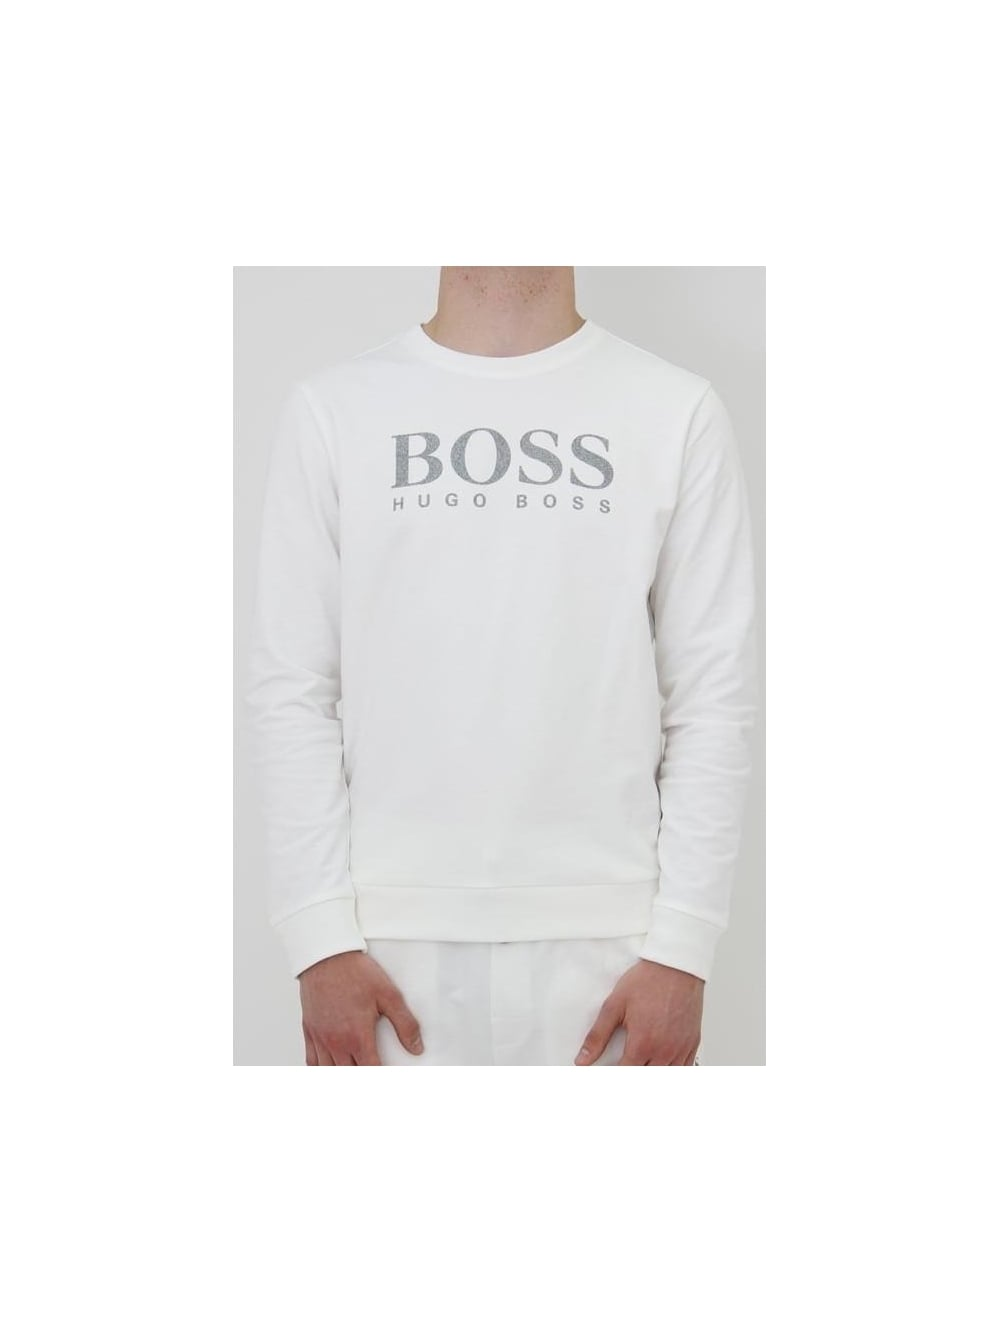 75866912dcd HUGO BOSS - BOSS Hugo Boss Chest Logo Sweatshirt In White - Northern ...